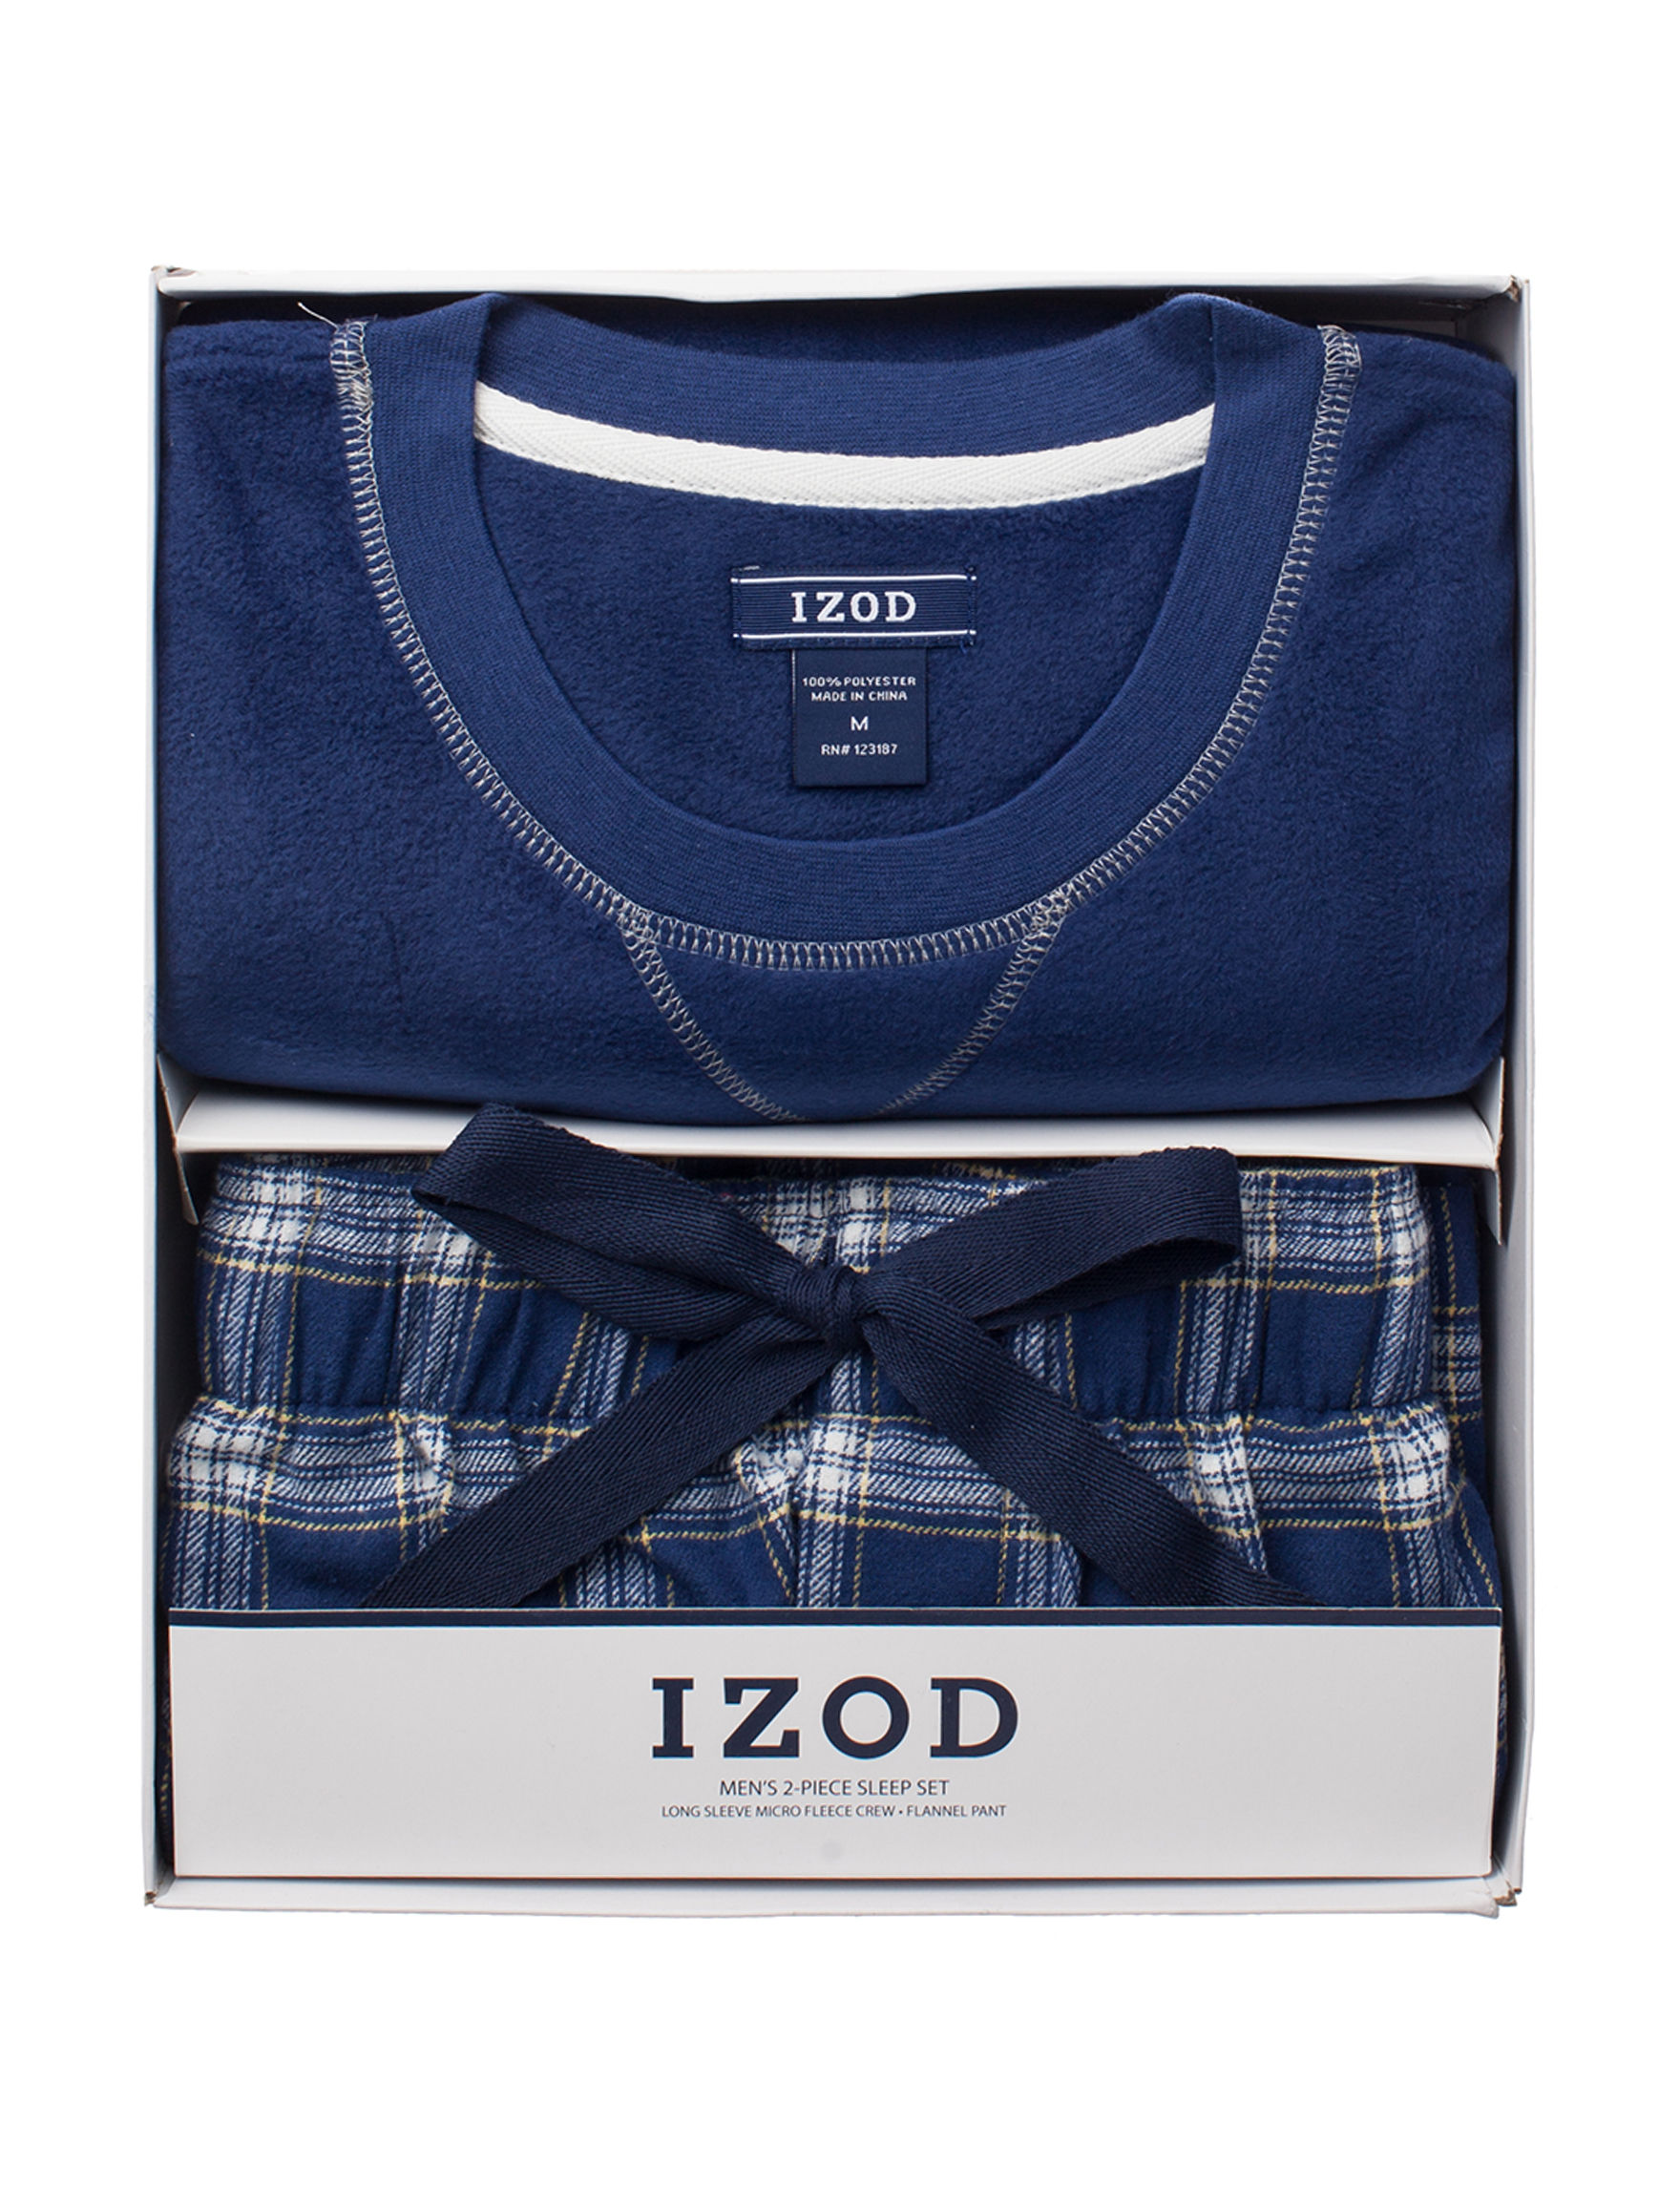 Izod Navy Pajama Sets